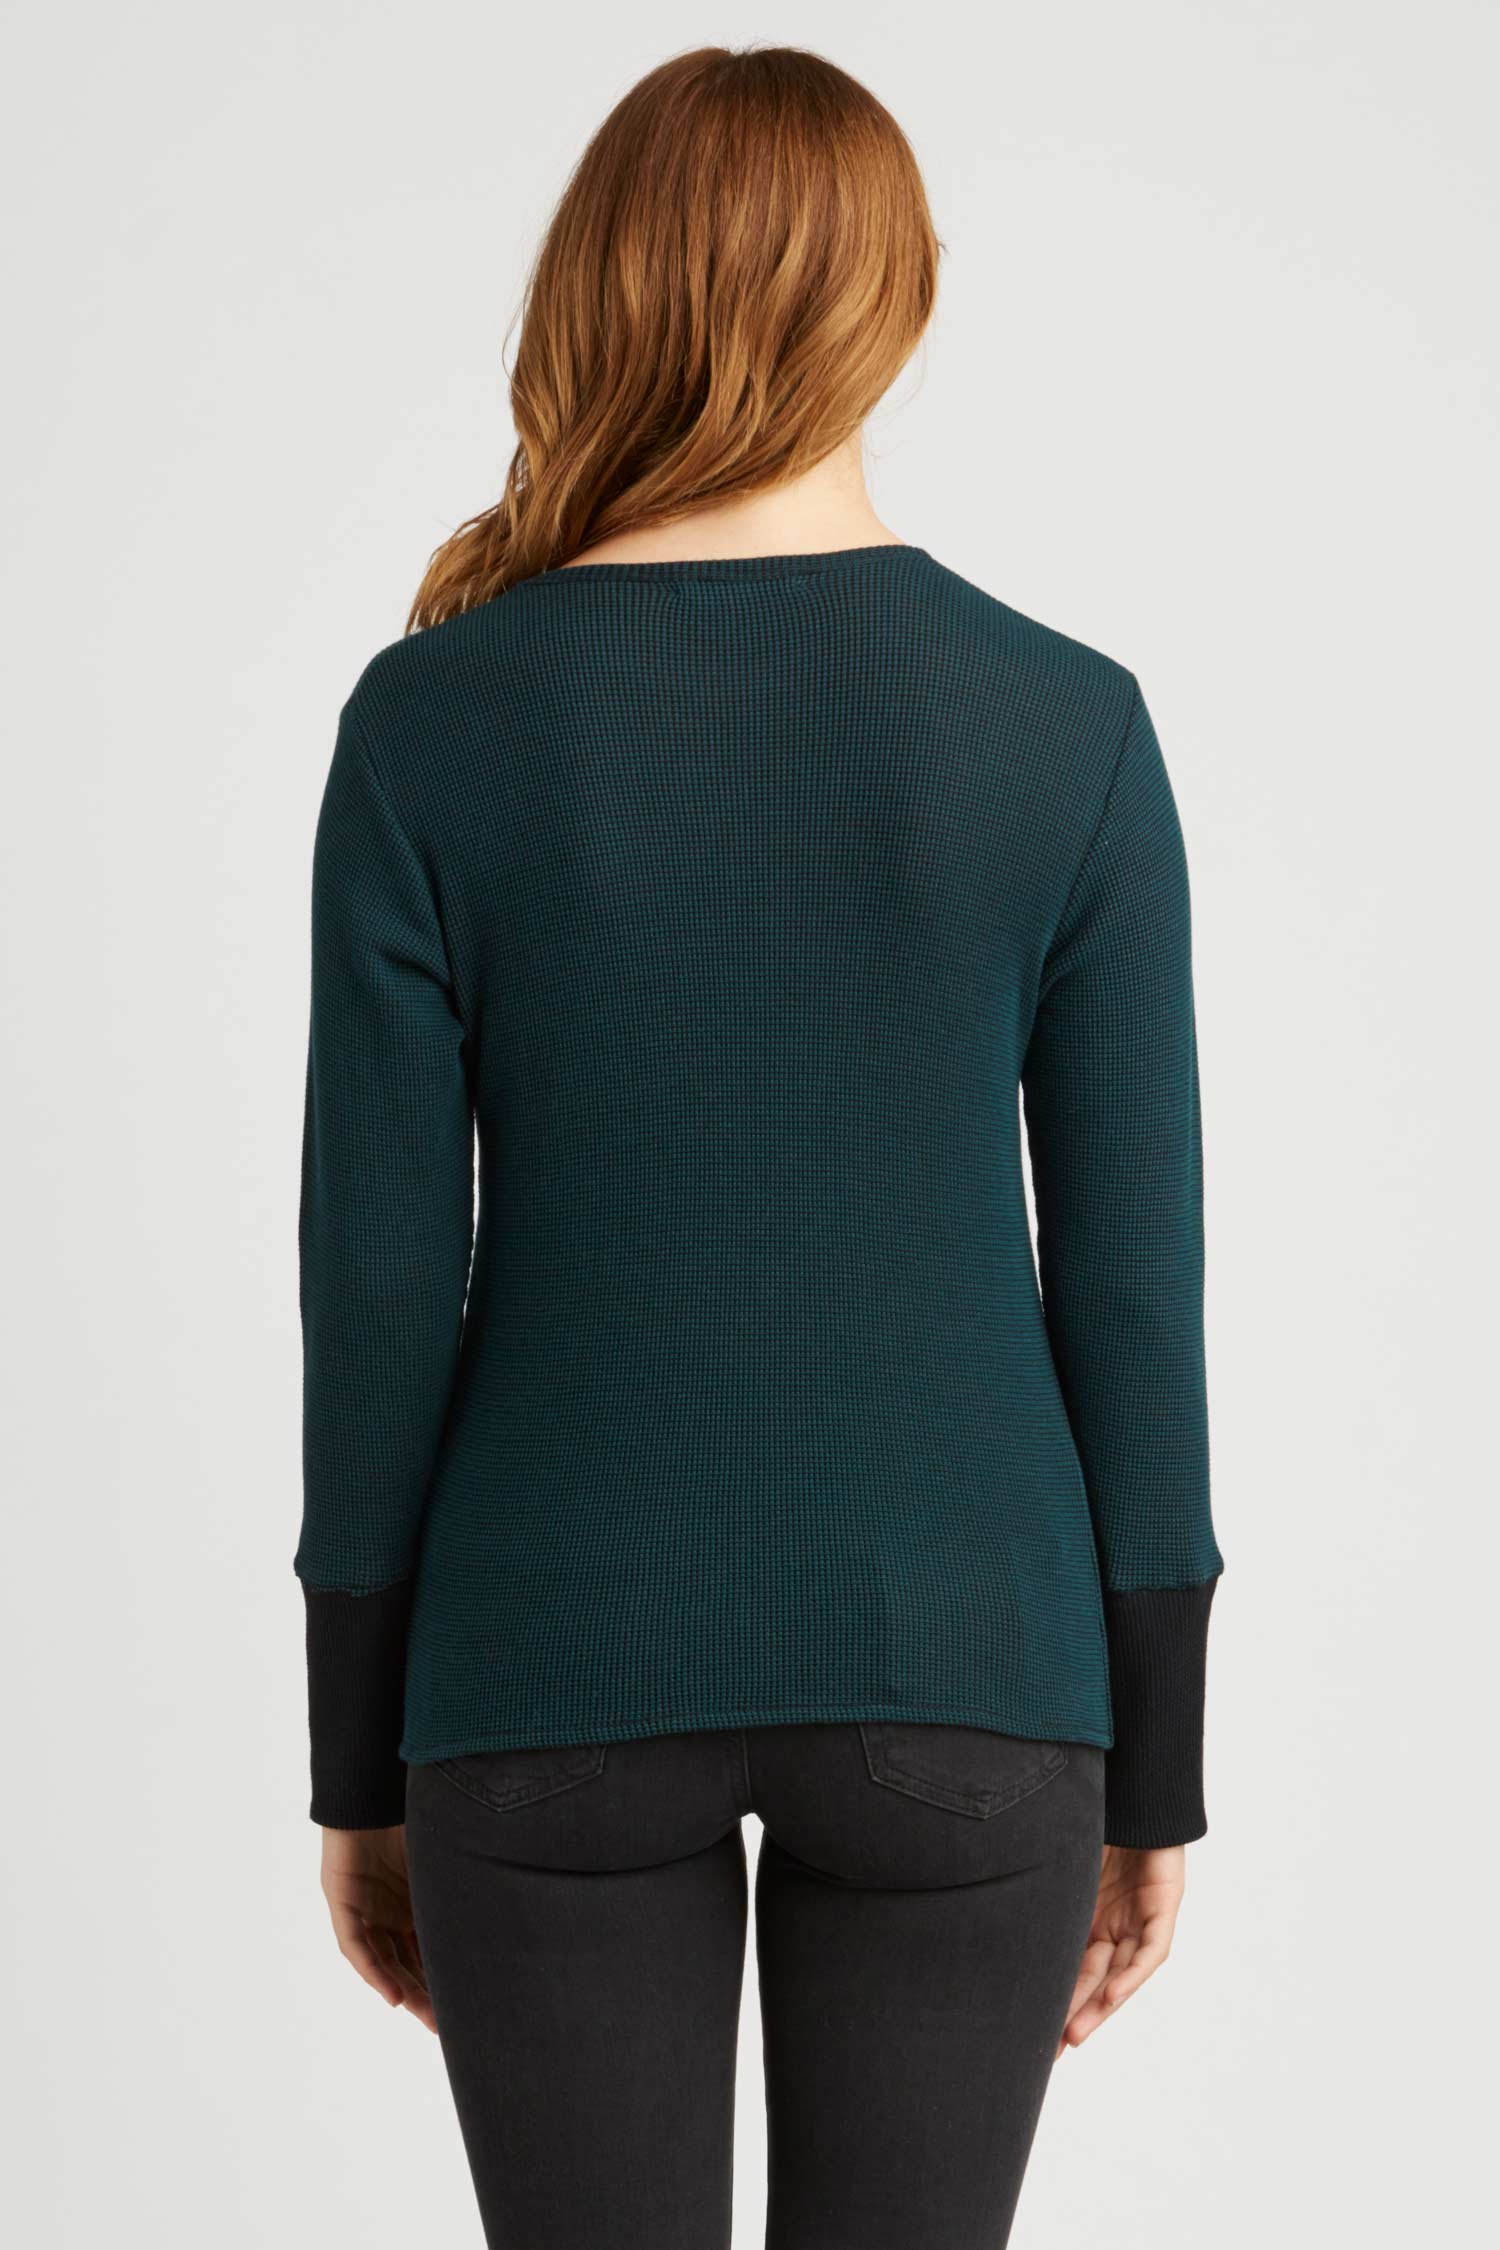 Womens Organic Cotton Top | Waffle Long Sleeve Crew | Teal